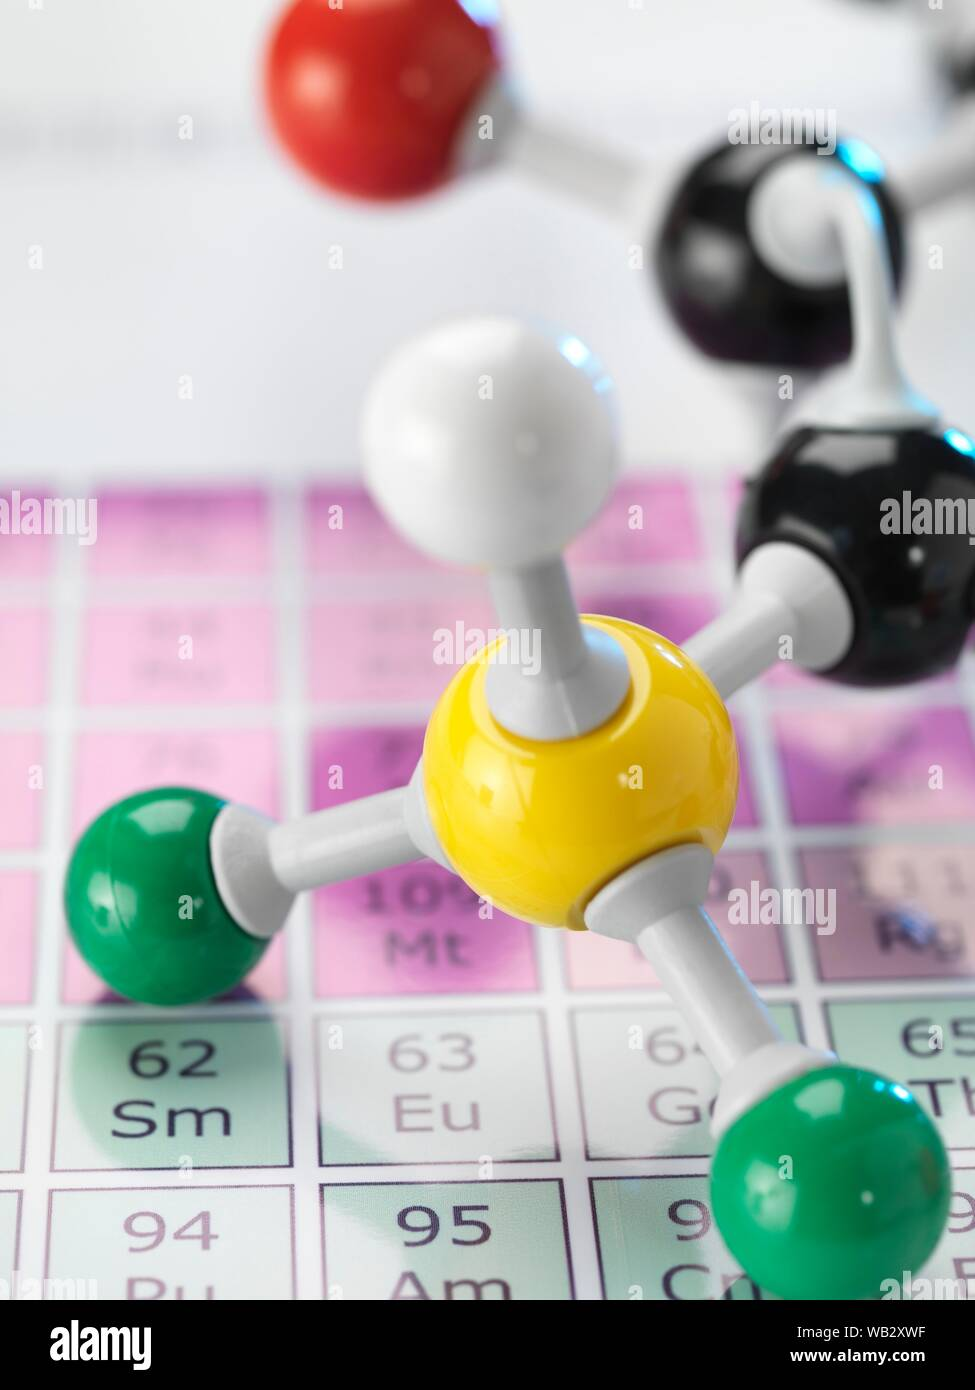 Chemistry, conceptual image. Ball and stick molecular model sitting on a periodic table Stock Photo